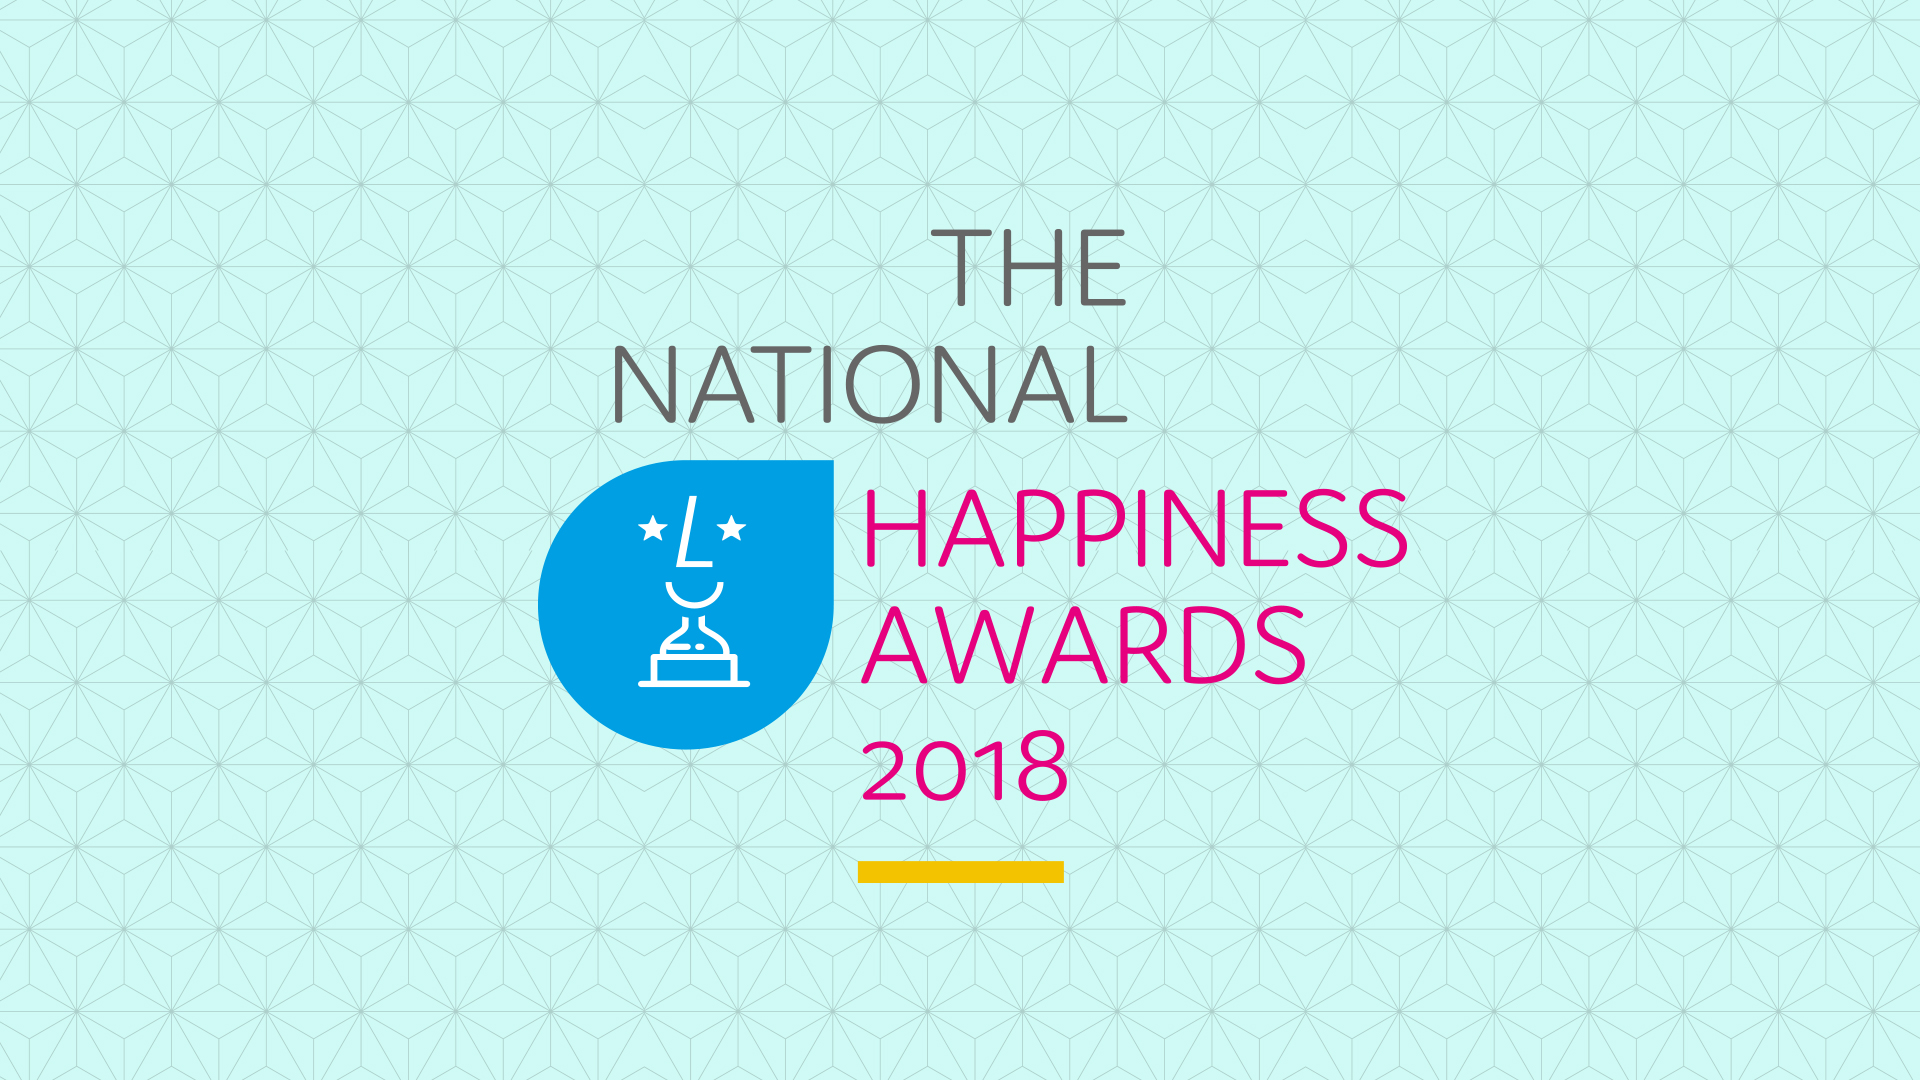 National Happiness Awards 2018 - Judge's whats and whos